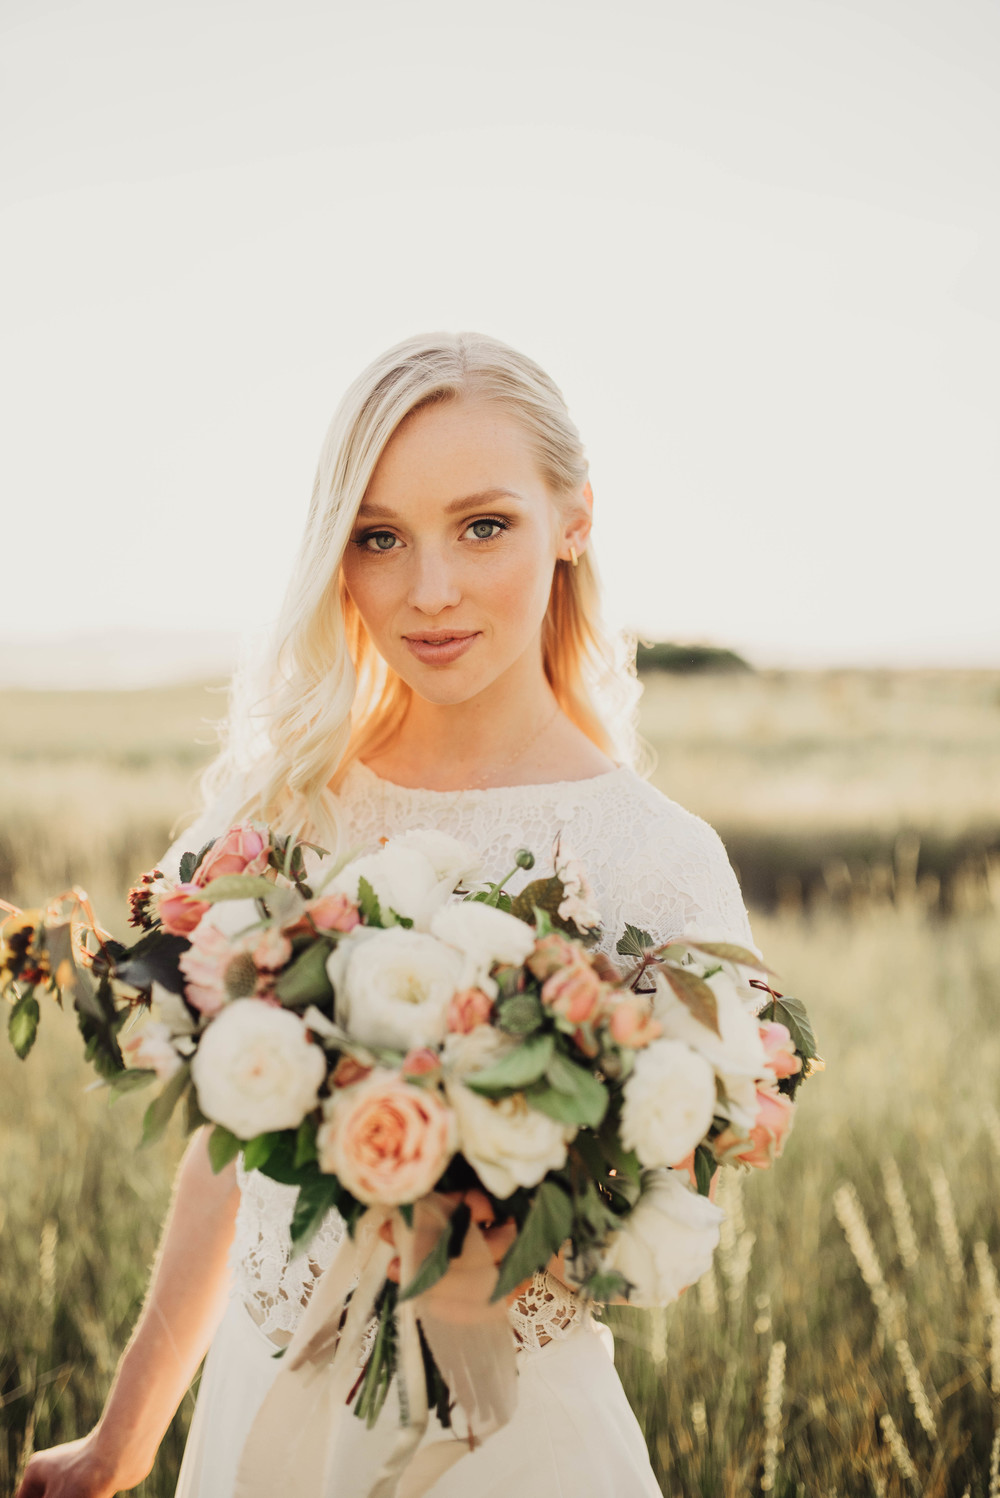 Glowing bride, large pink and white bouquet